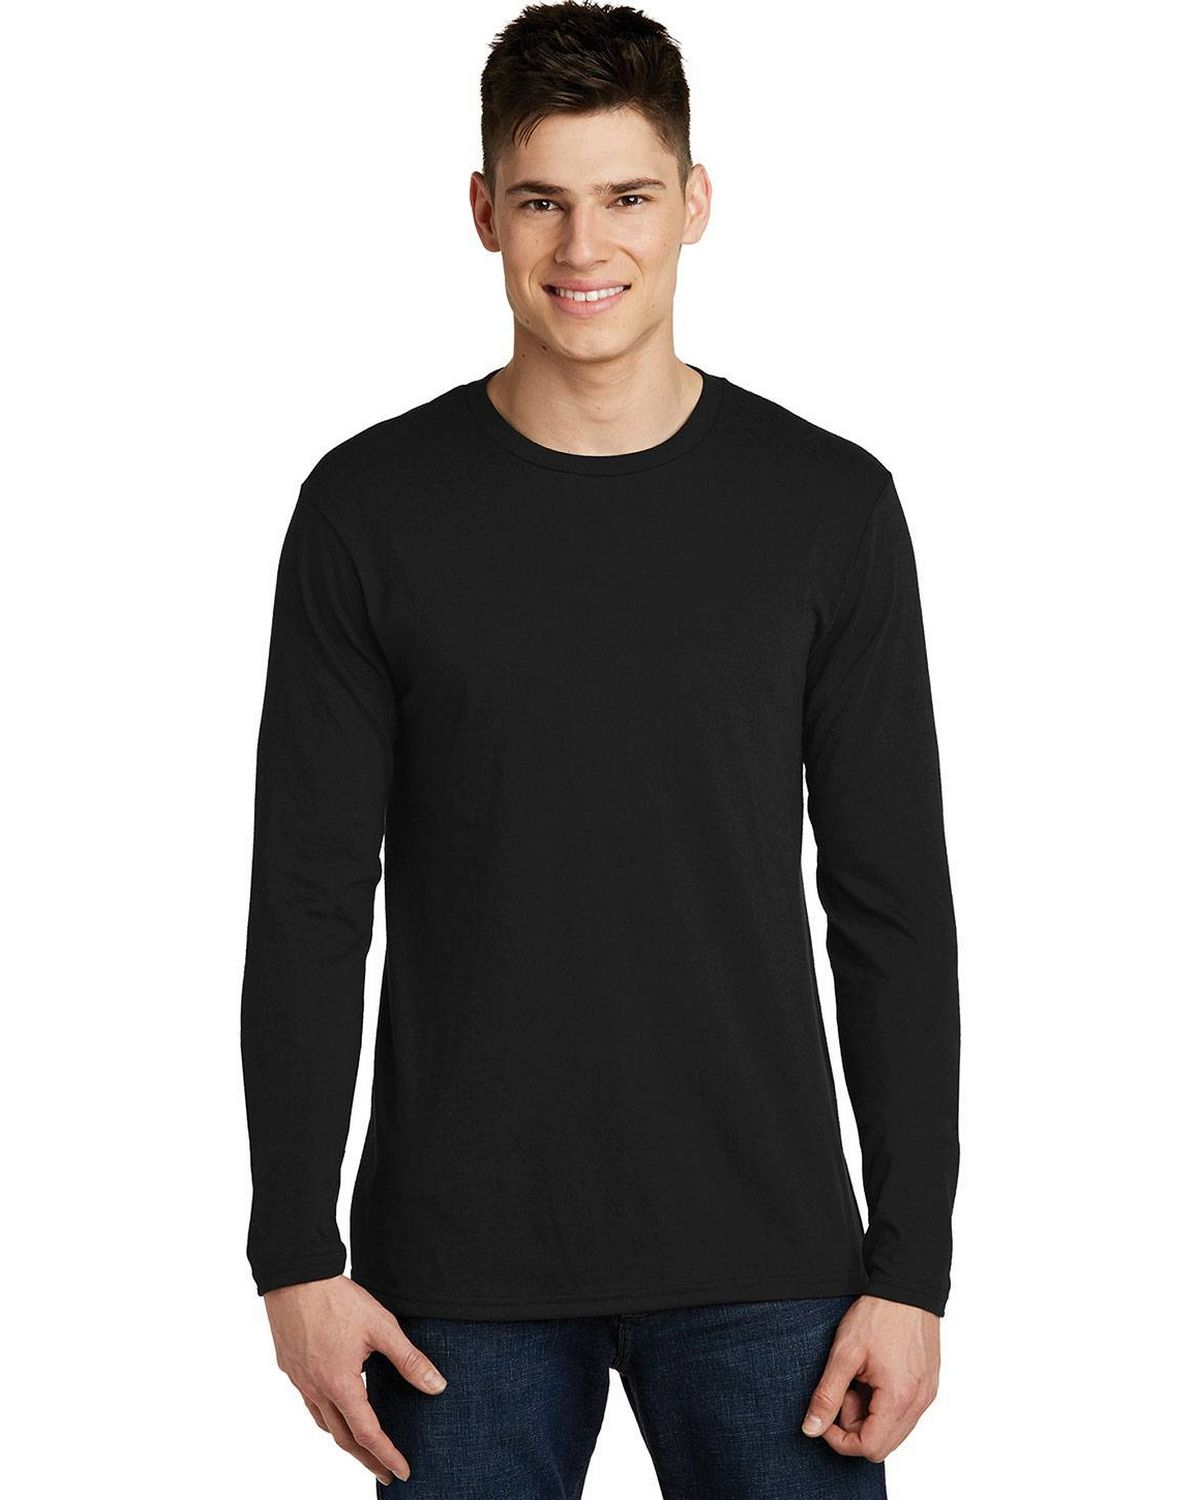 District DT6200 Mens Very Important Long Sleeve T-Shirt